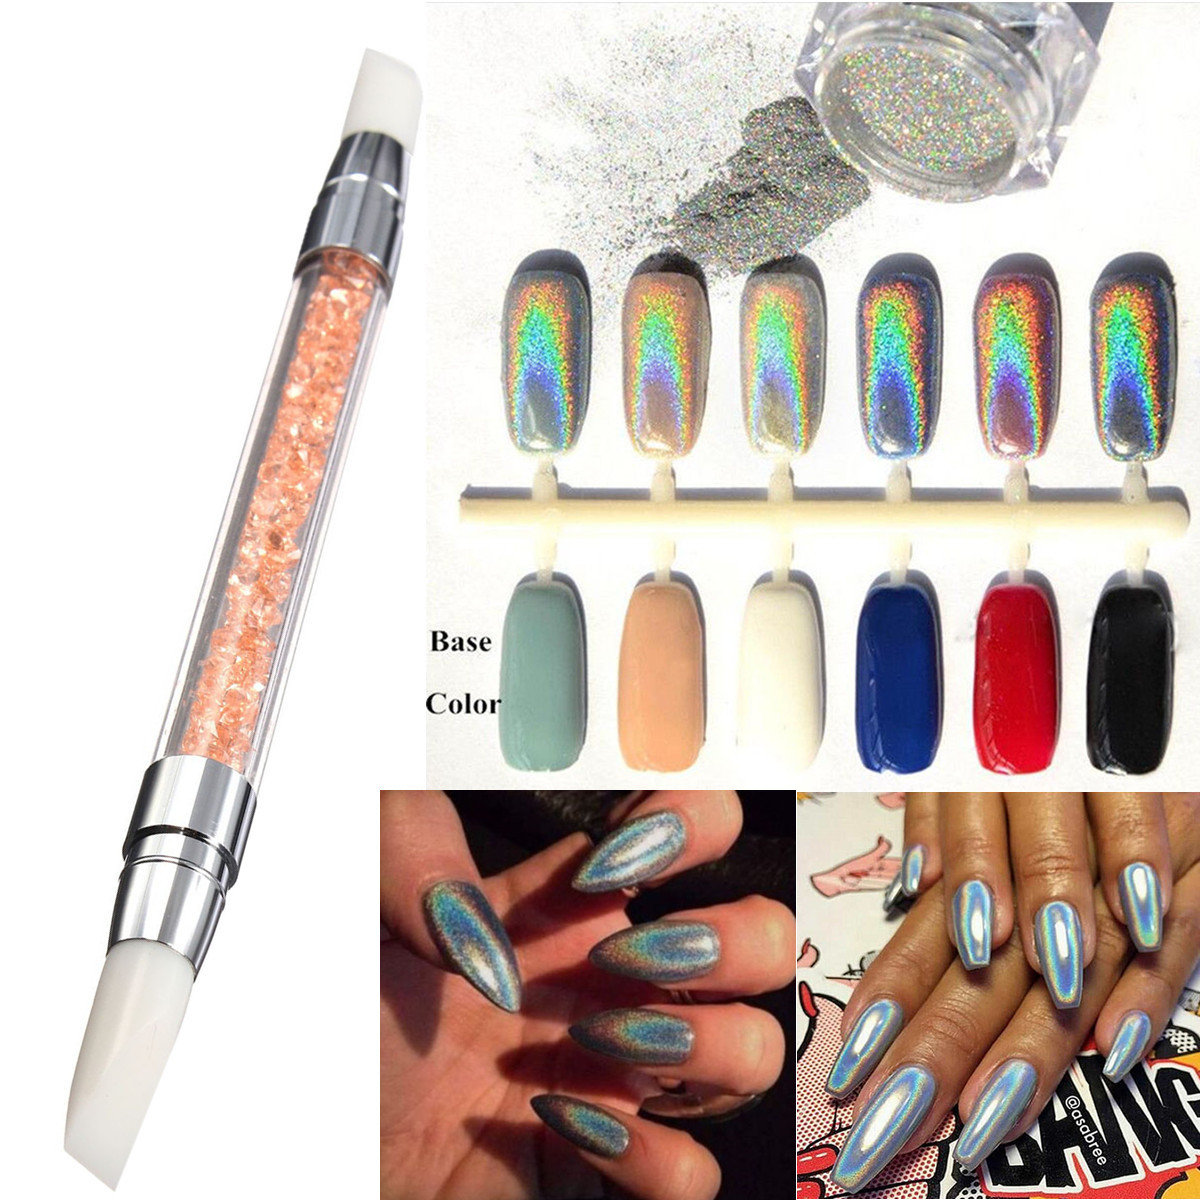 3g Rainbow Holographic Laser Chrome Powder Pigments + Silicone Sculpture Carved Pen Nail Brush